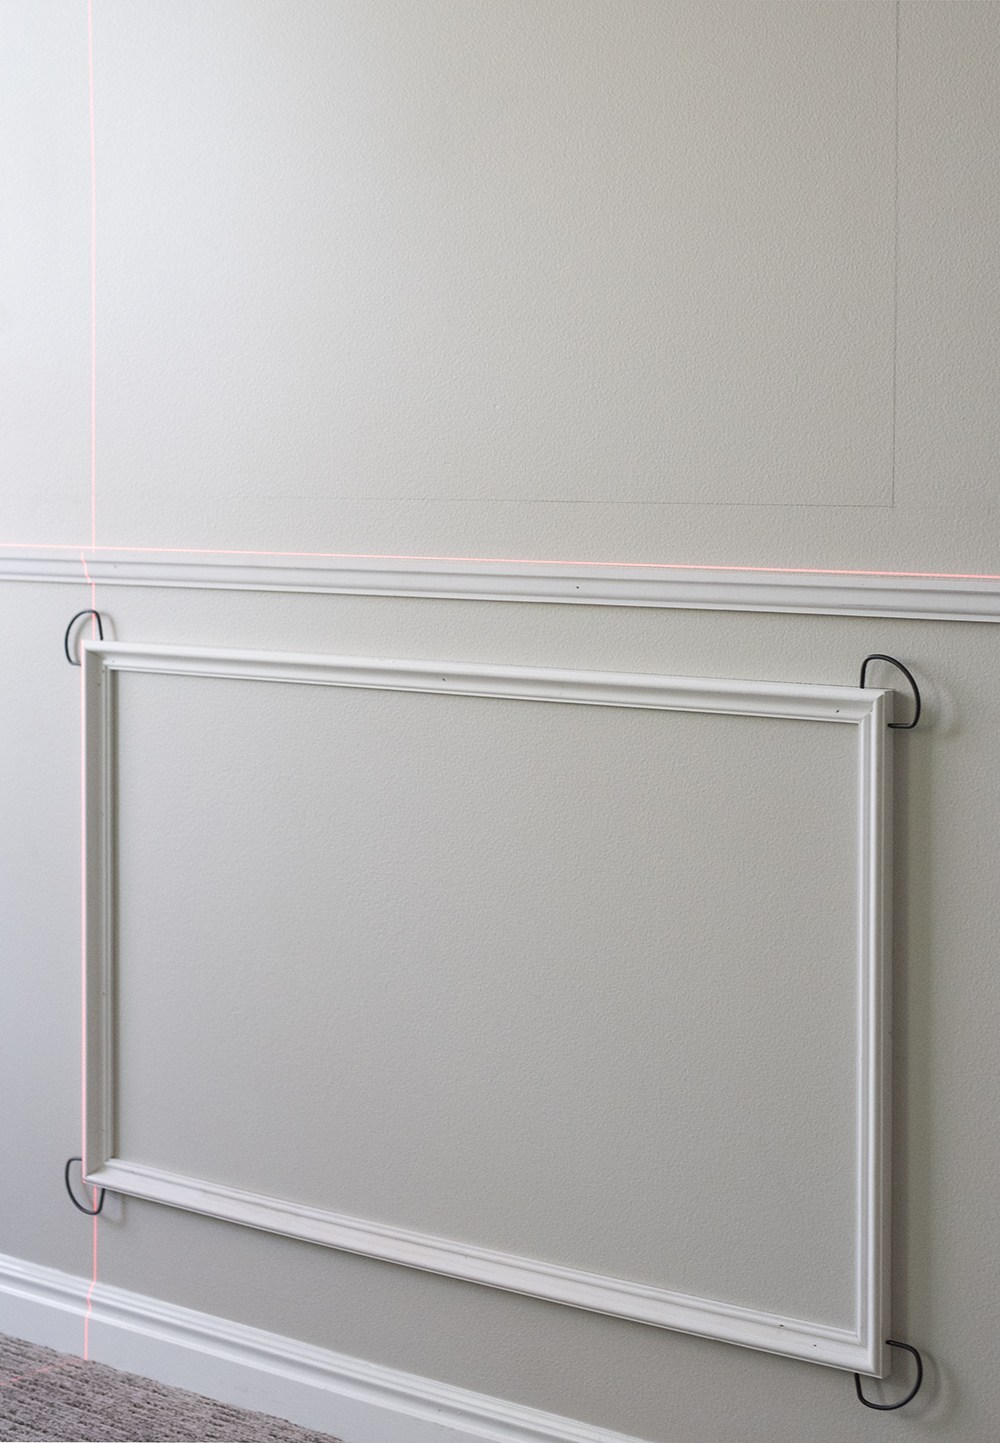 Your Millwork Questions Answered (a Q&A) - roomfortuesday.com